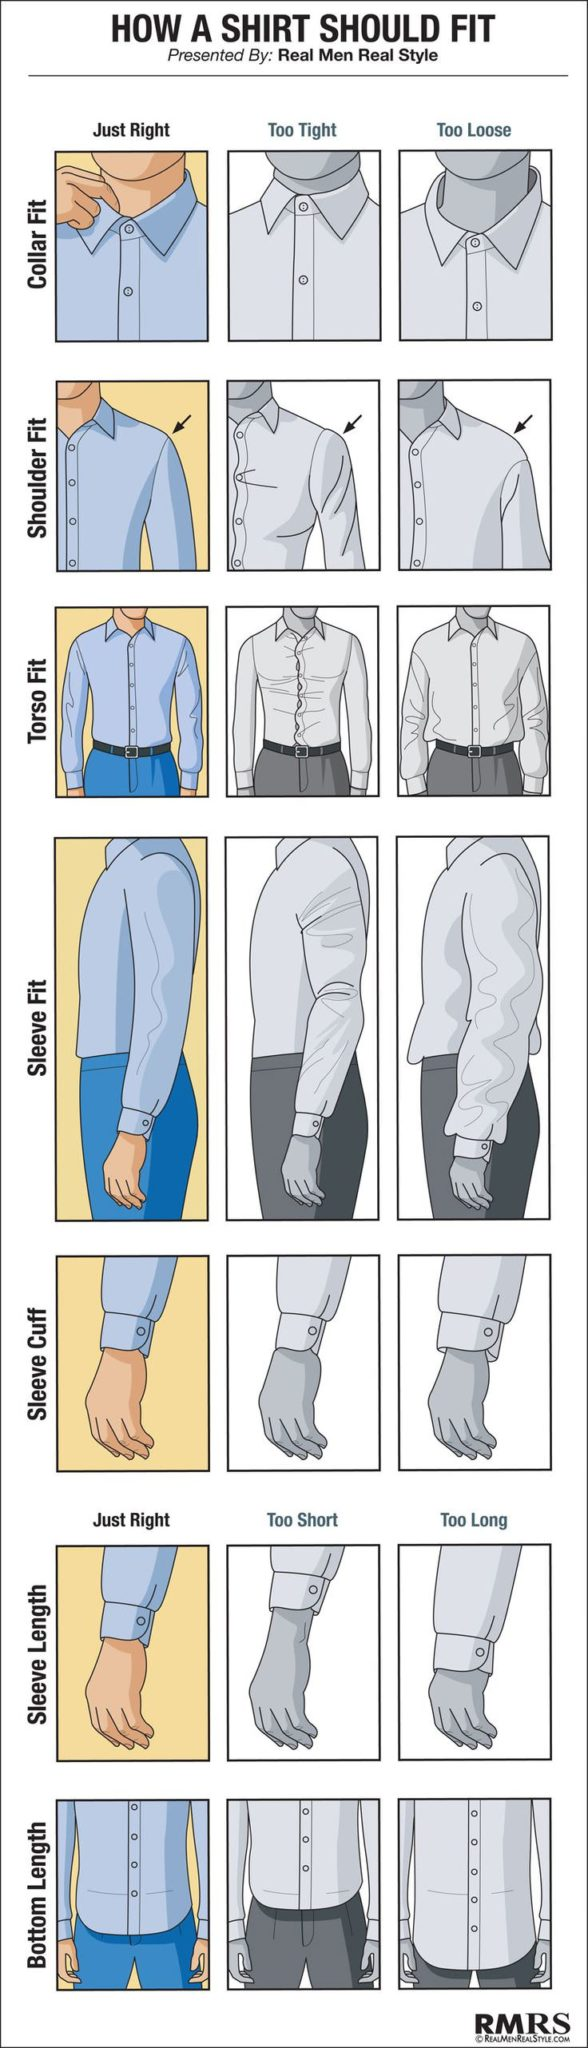 how a shirt should fit guide